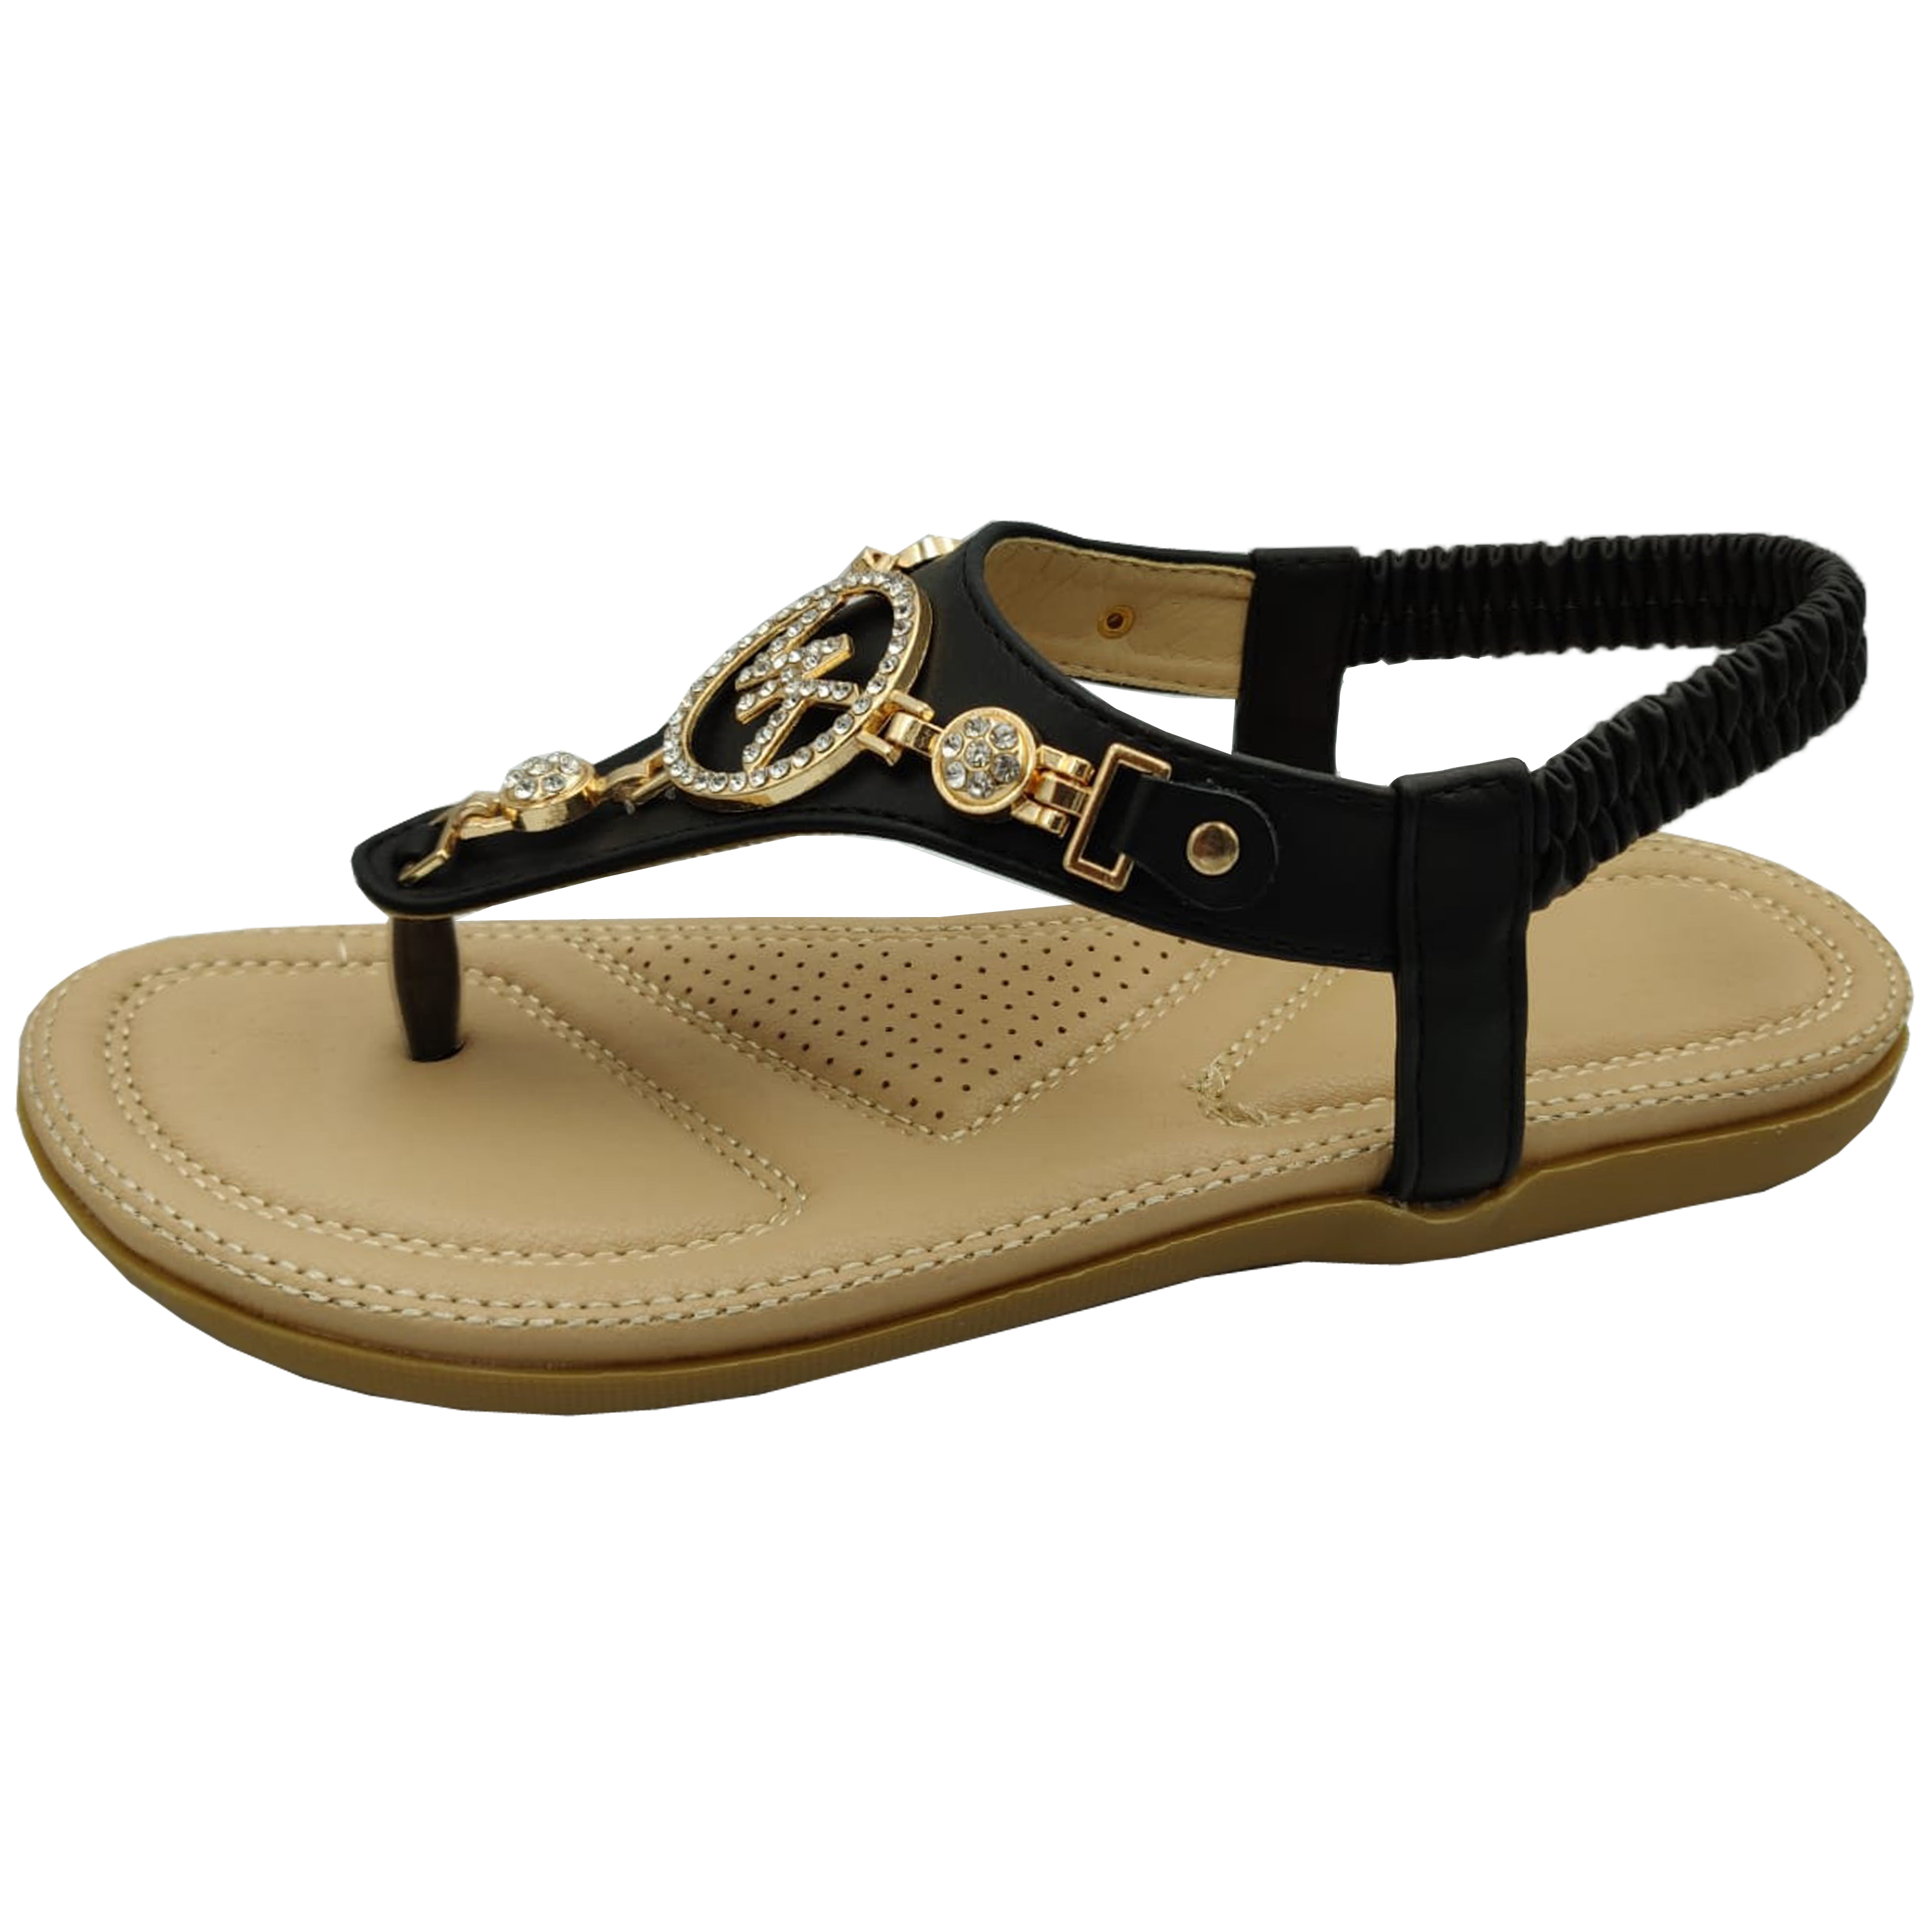 Ladies-Flat-Sandals-Womens-Diamante-Sling-Back-Toe-Post-Shoes-Summer-Fashion-New thumbnail 4